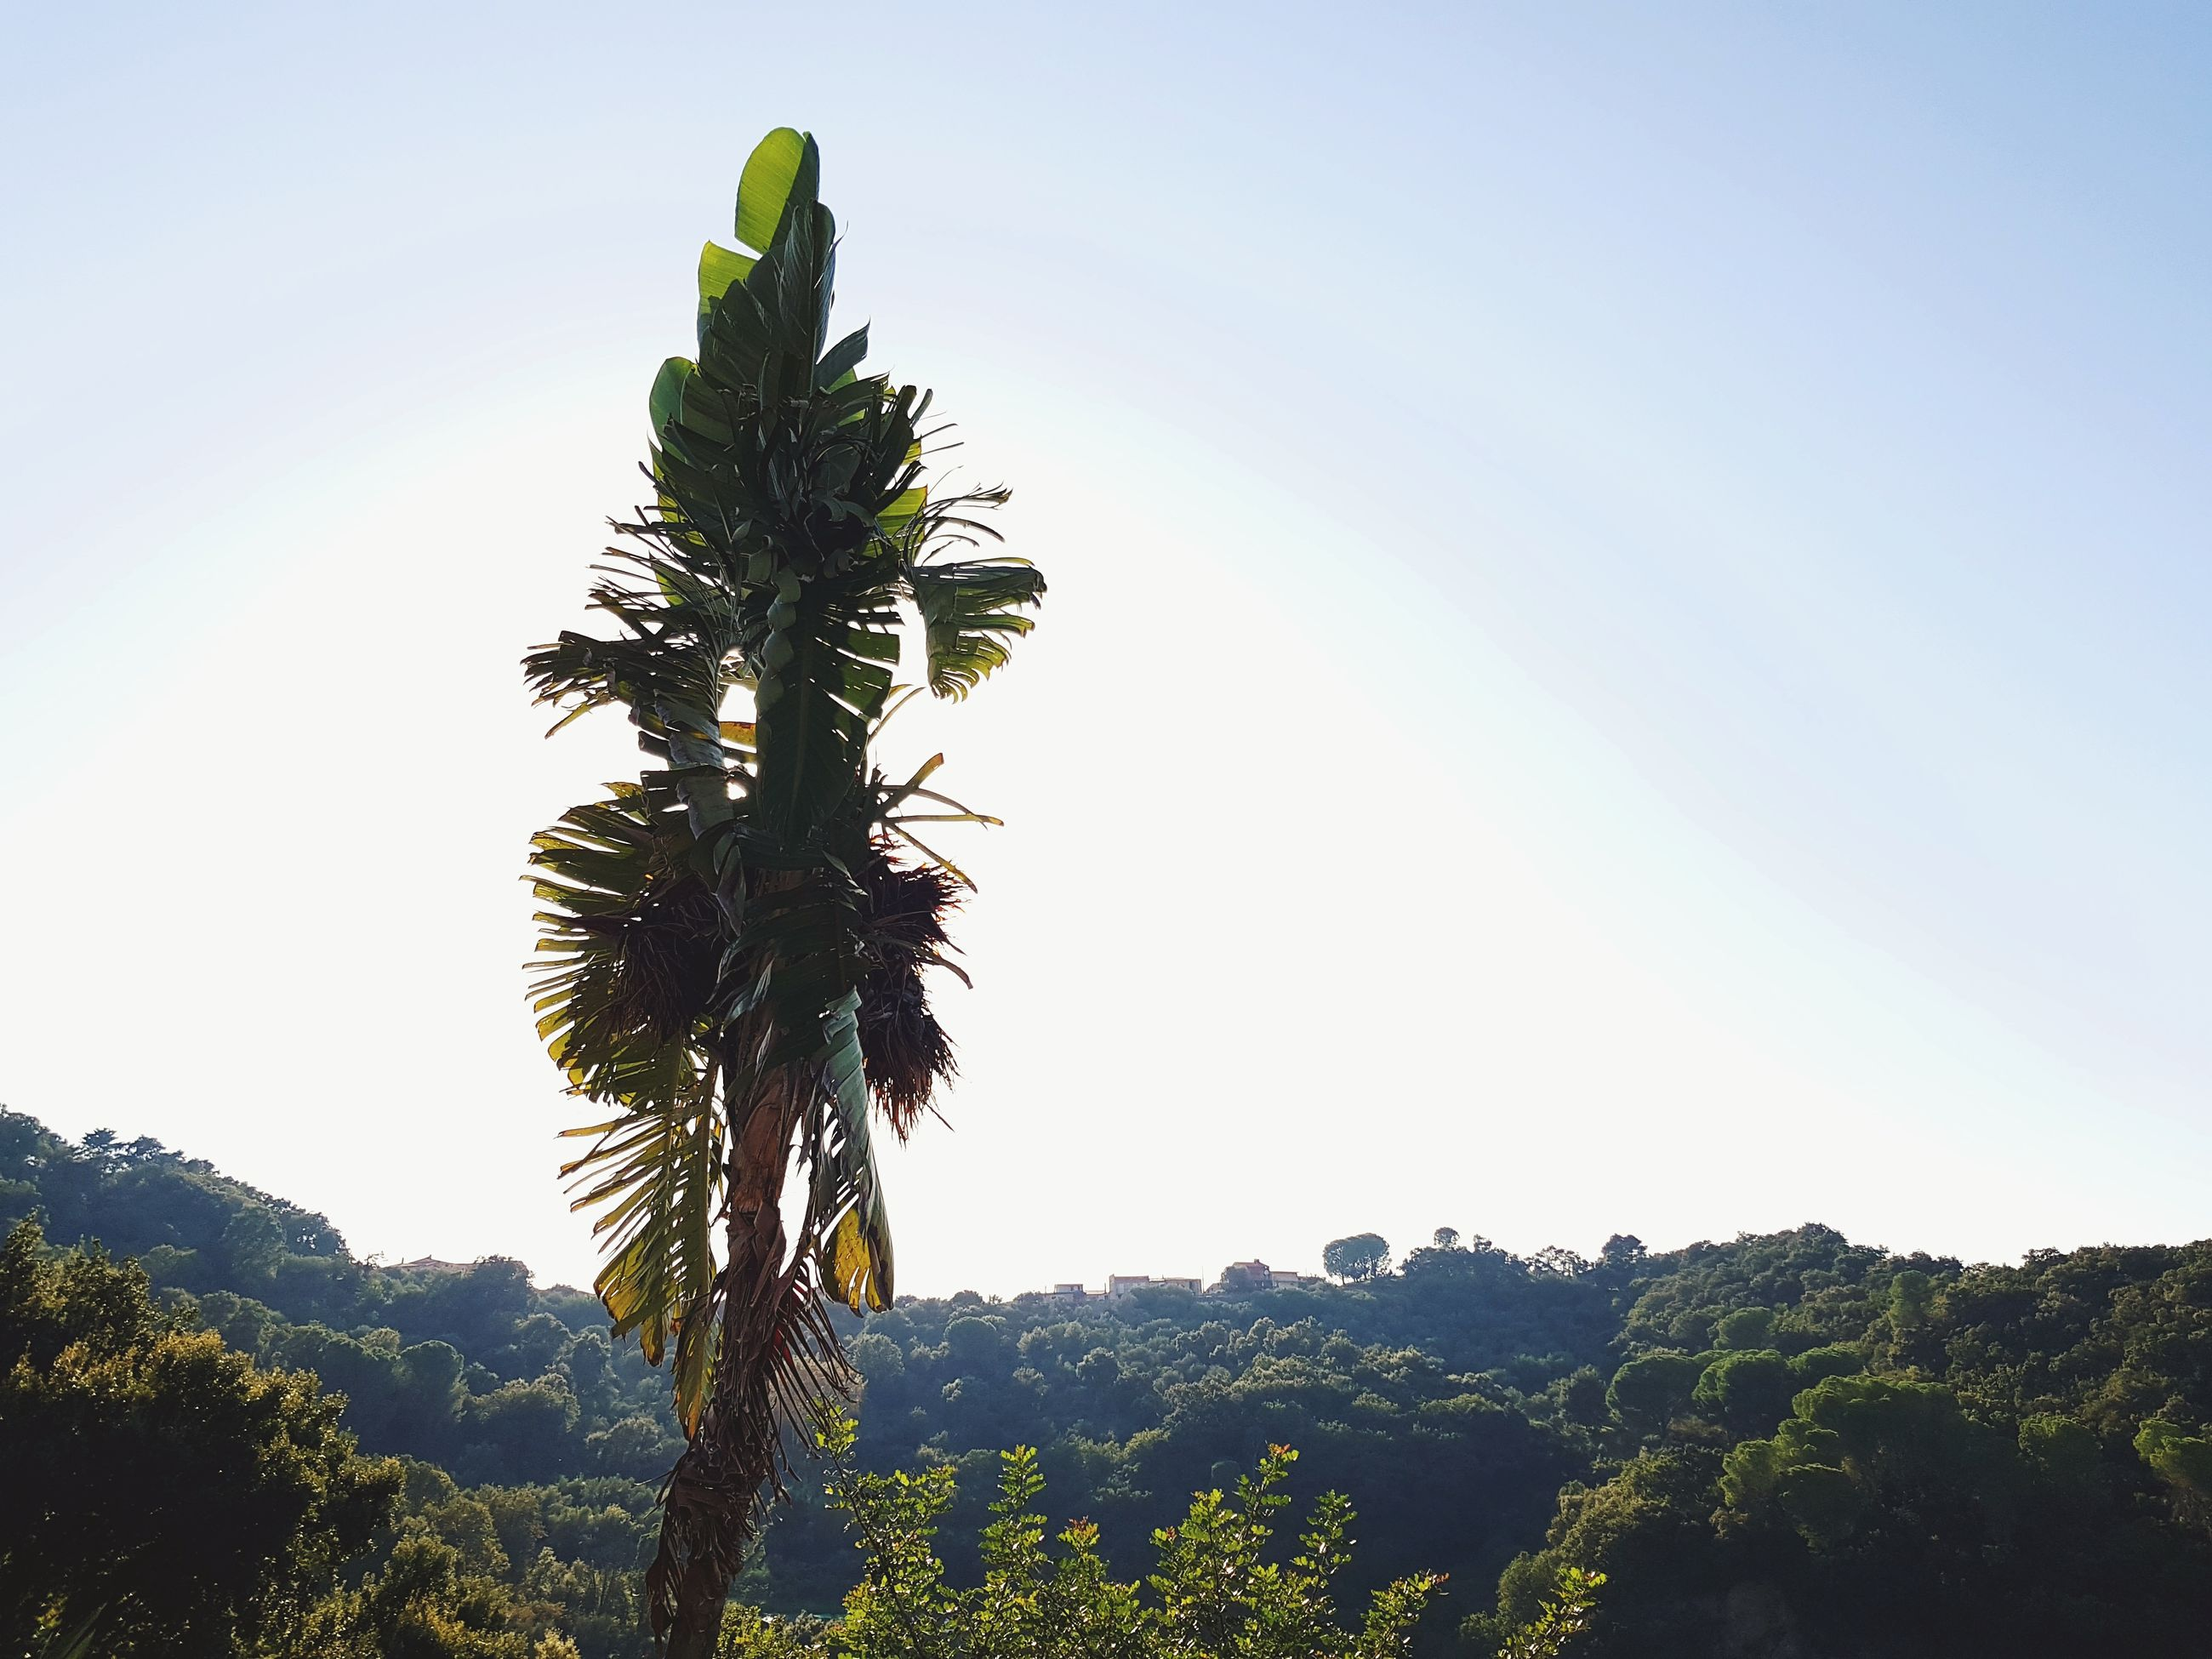 plant, sky, growth, beauty in nature, tree, nature, tranquility, green color, scenics - nature, tranquil scene, day, clear sky, no people, landscape, environment, sunlight, outdoors, non-urban scene, mountain, copy space